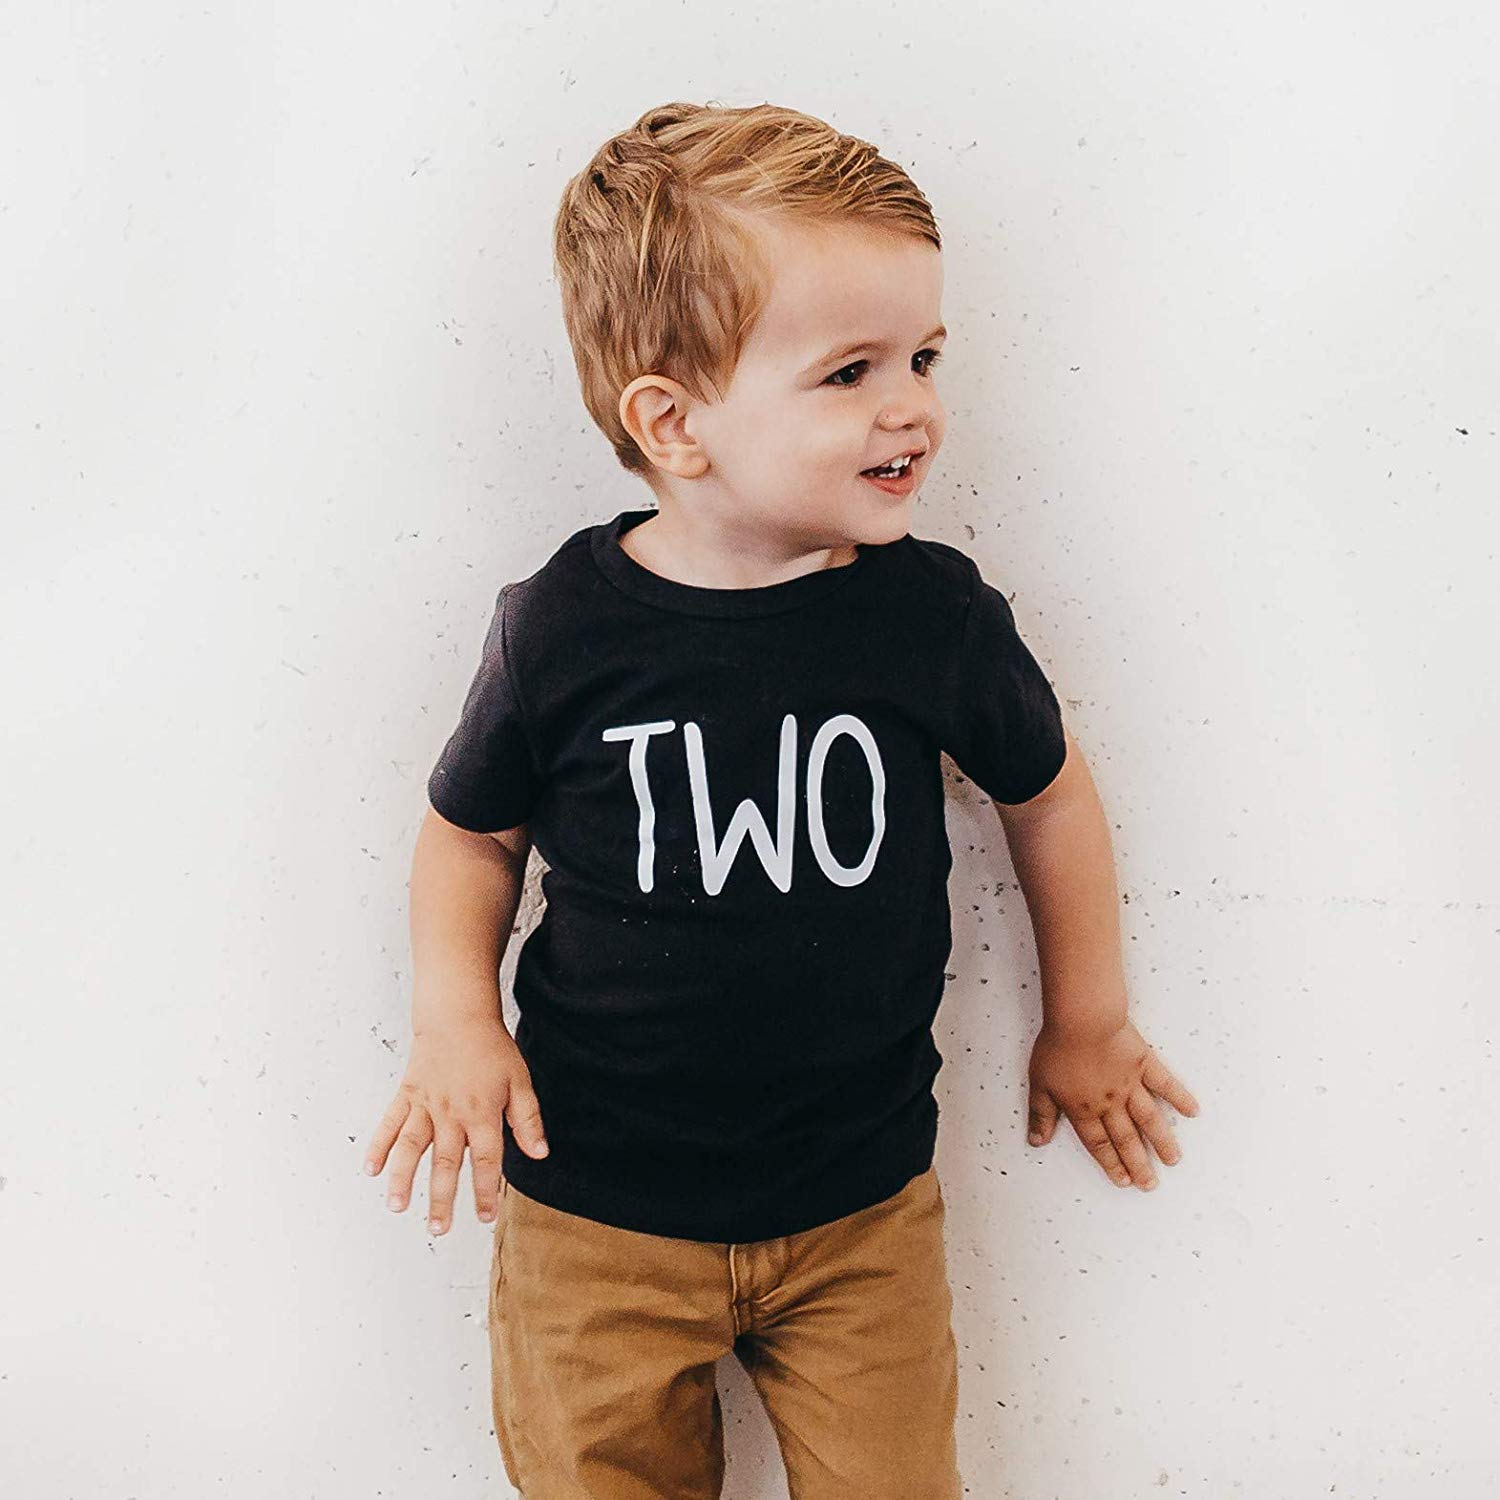 b194194dcbc4d Get Quotations · Second Birthday Boy Shirt, 2nd Birthday Shirt Boy, Two  Shirt, Birthday Boy,